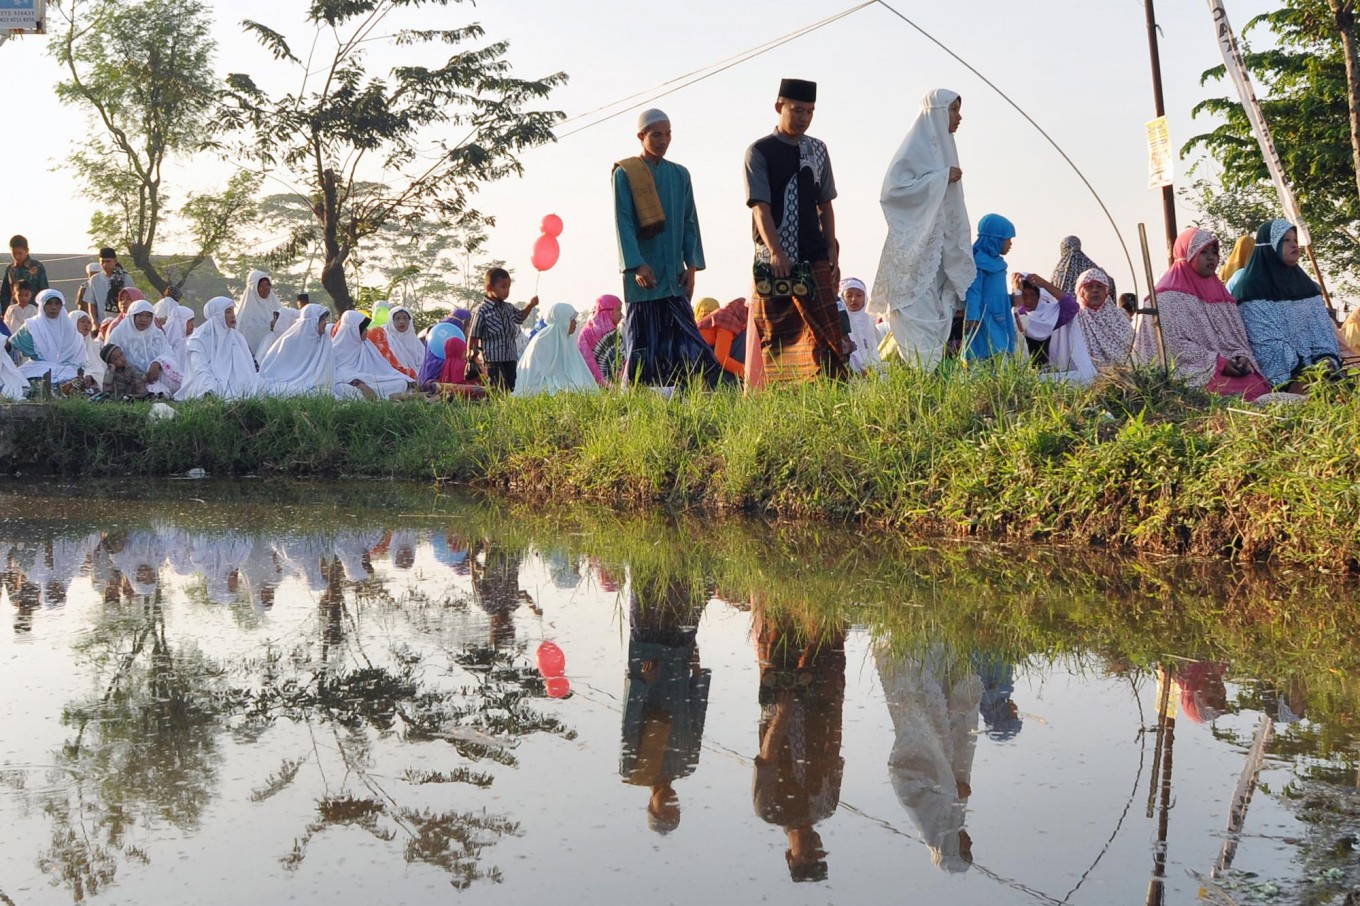 Residents of Nglinggi, Kebonarum, Klaten, Central Java, are reflected in a shallow pool as they prepare for the Ied prayer in a field on Sunday, June 25, 2017. JP/Magnus Hendratmo